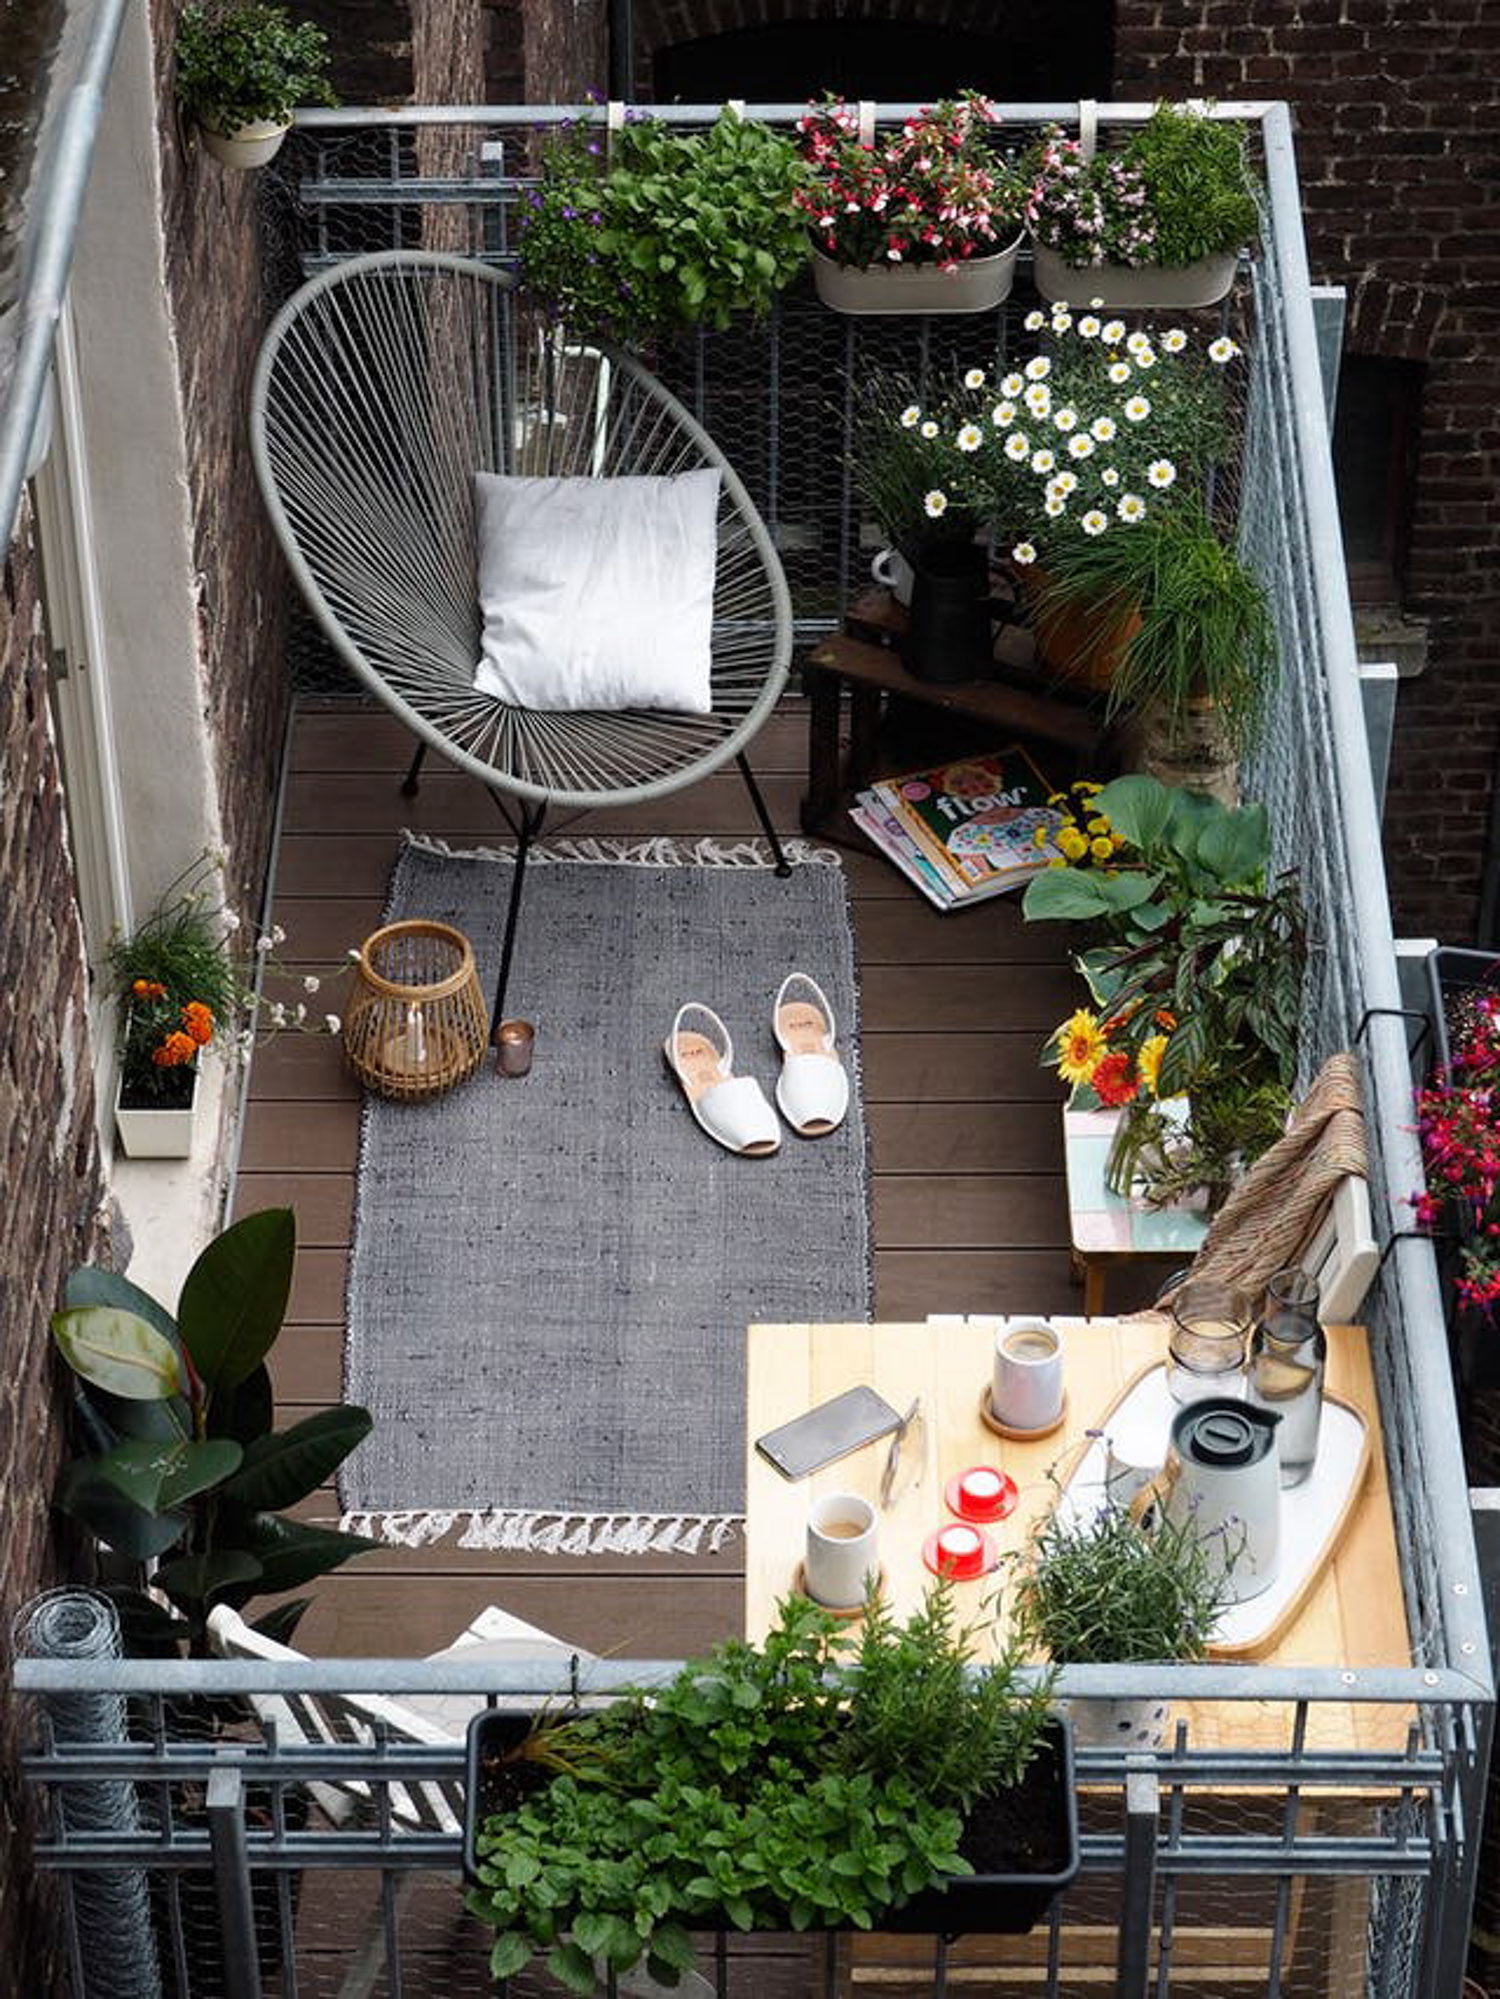 Small Apartment Balcony Garden Ideas: Inspiration For Small Apartment Balconies In The City